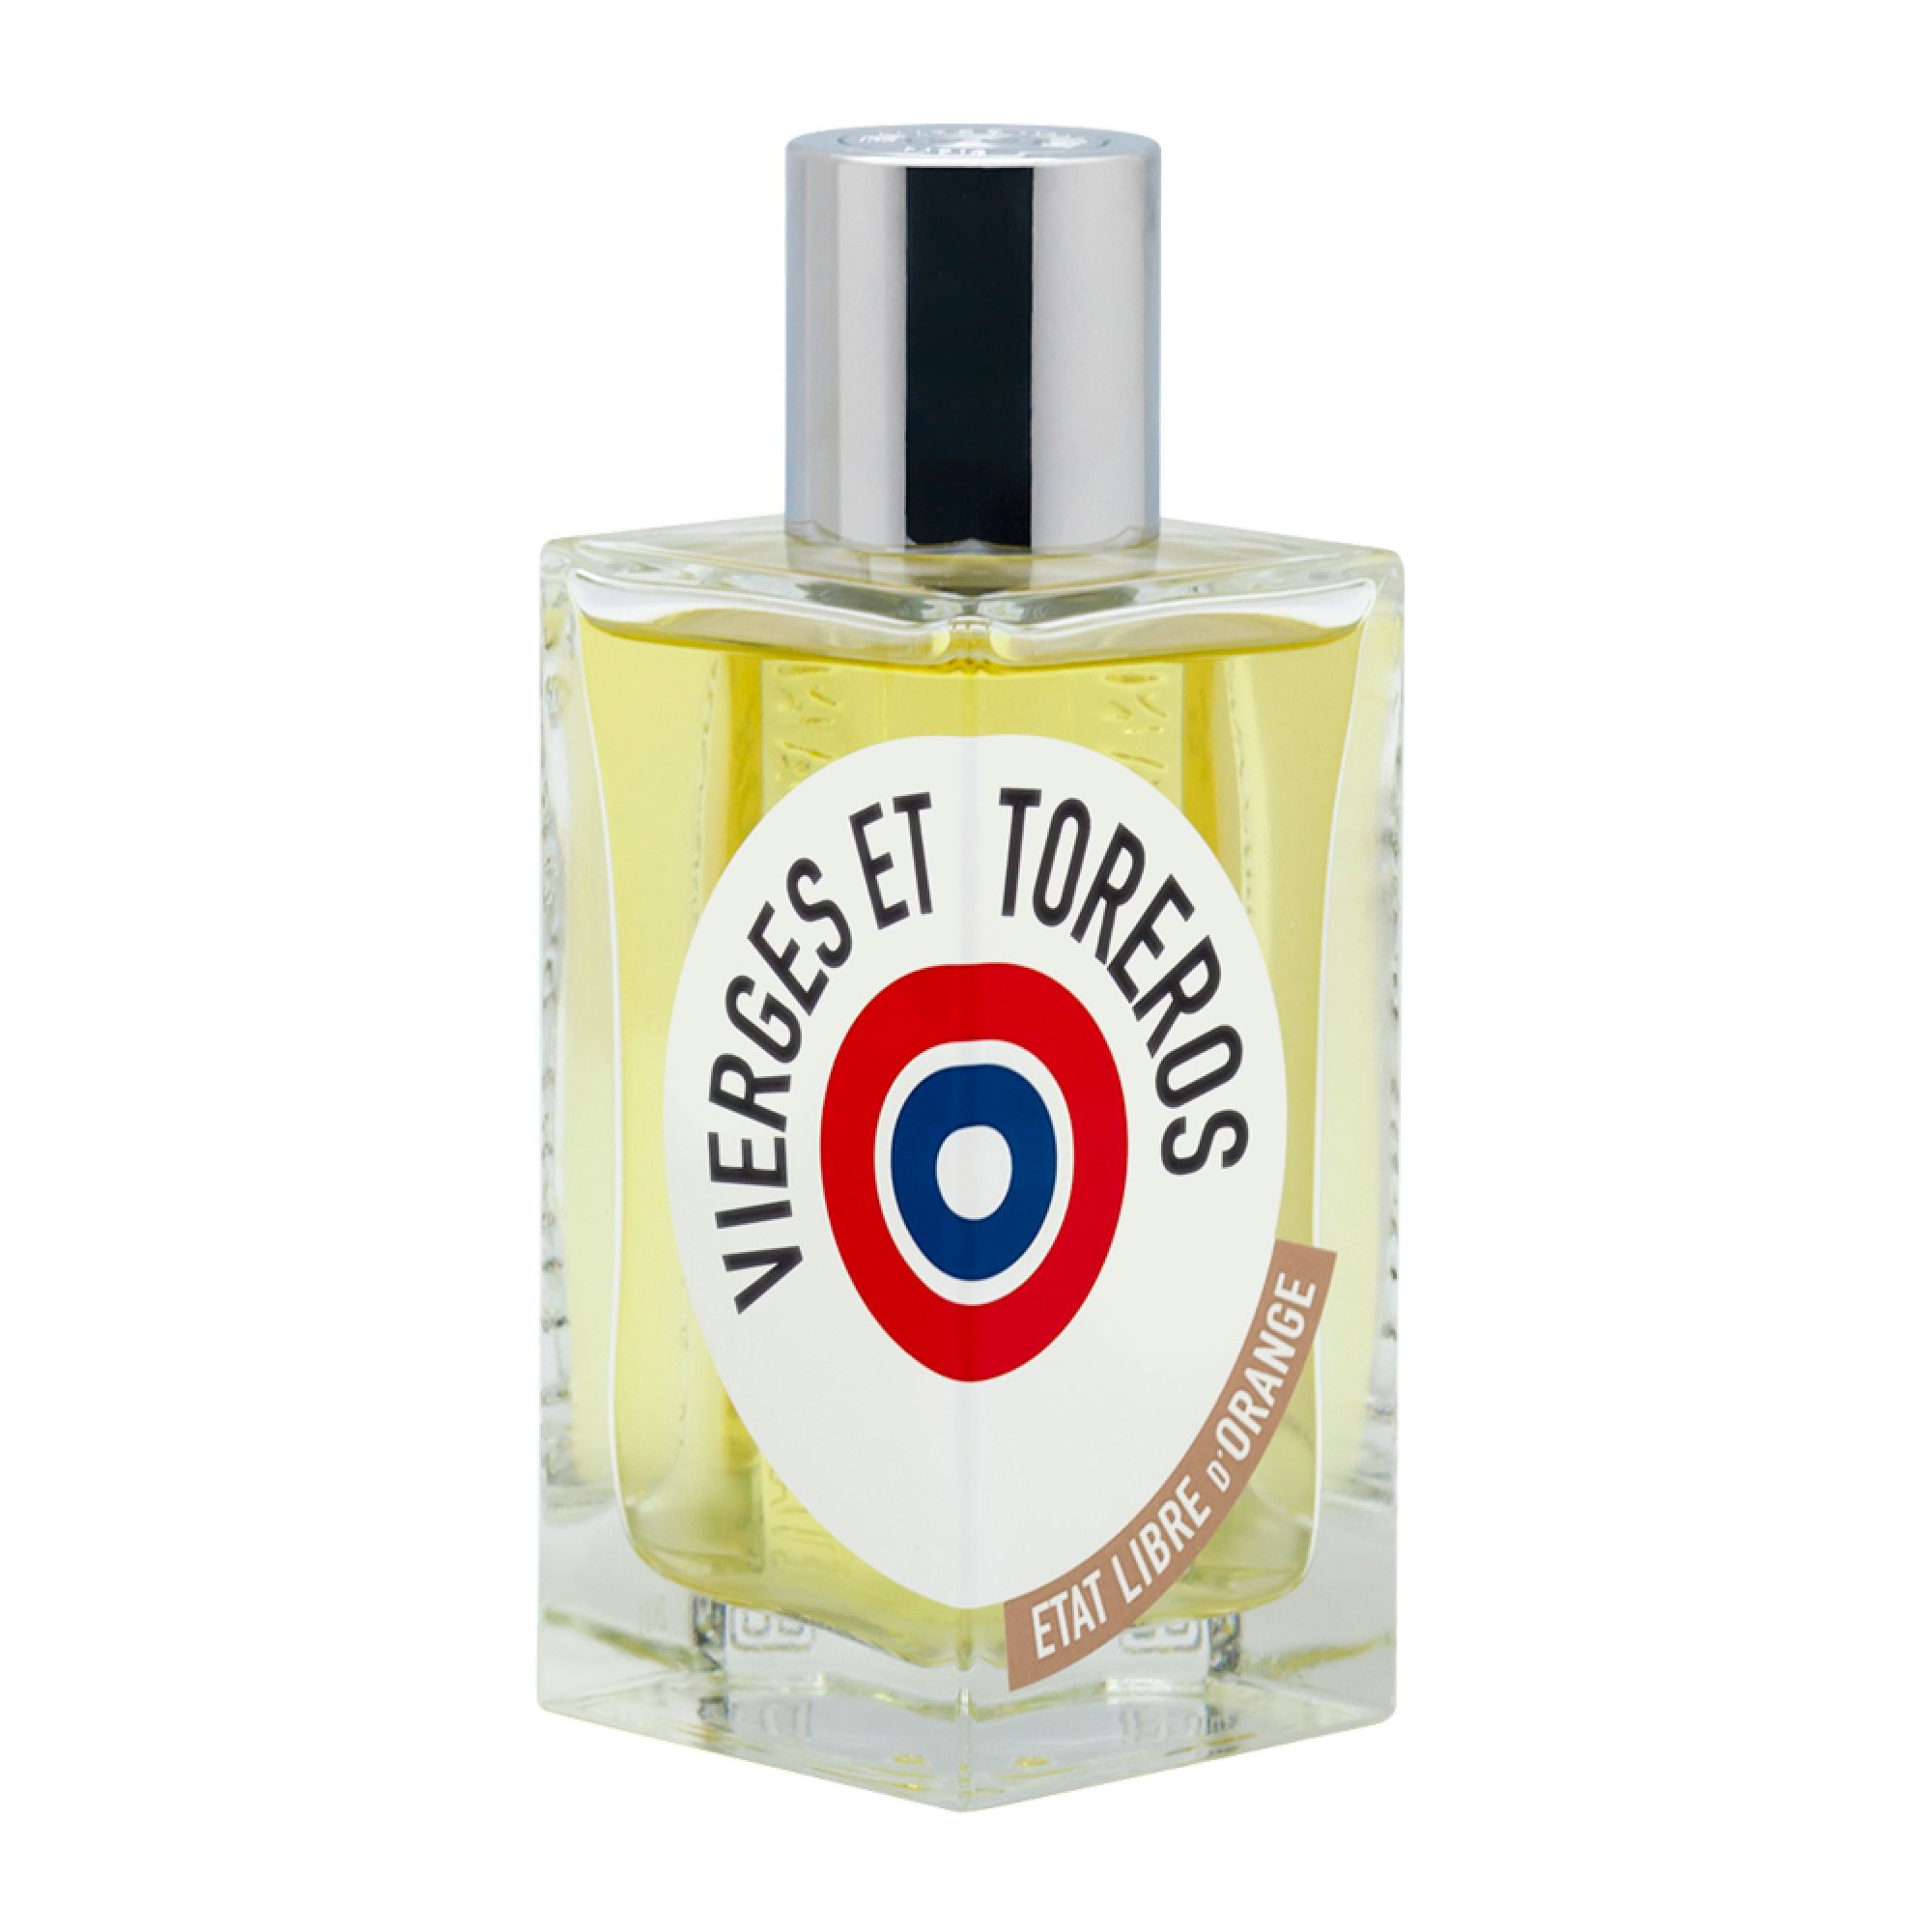 Etat Libre d'Orange Etat Libre d'Orange Vierges et Toreros Eau de Parfum 50ml